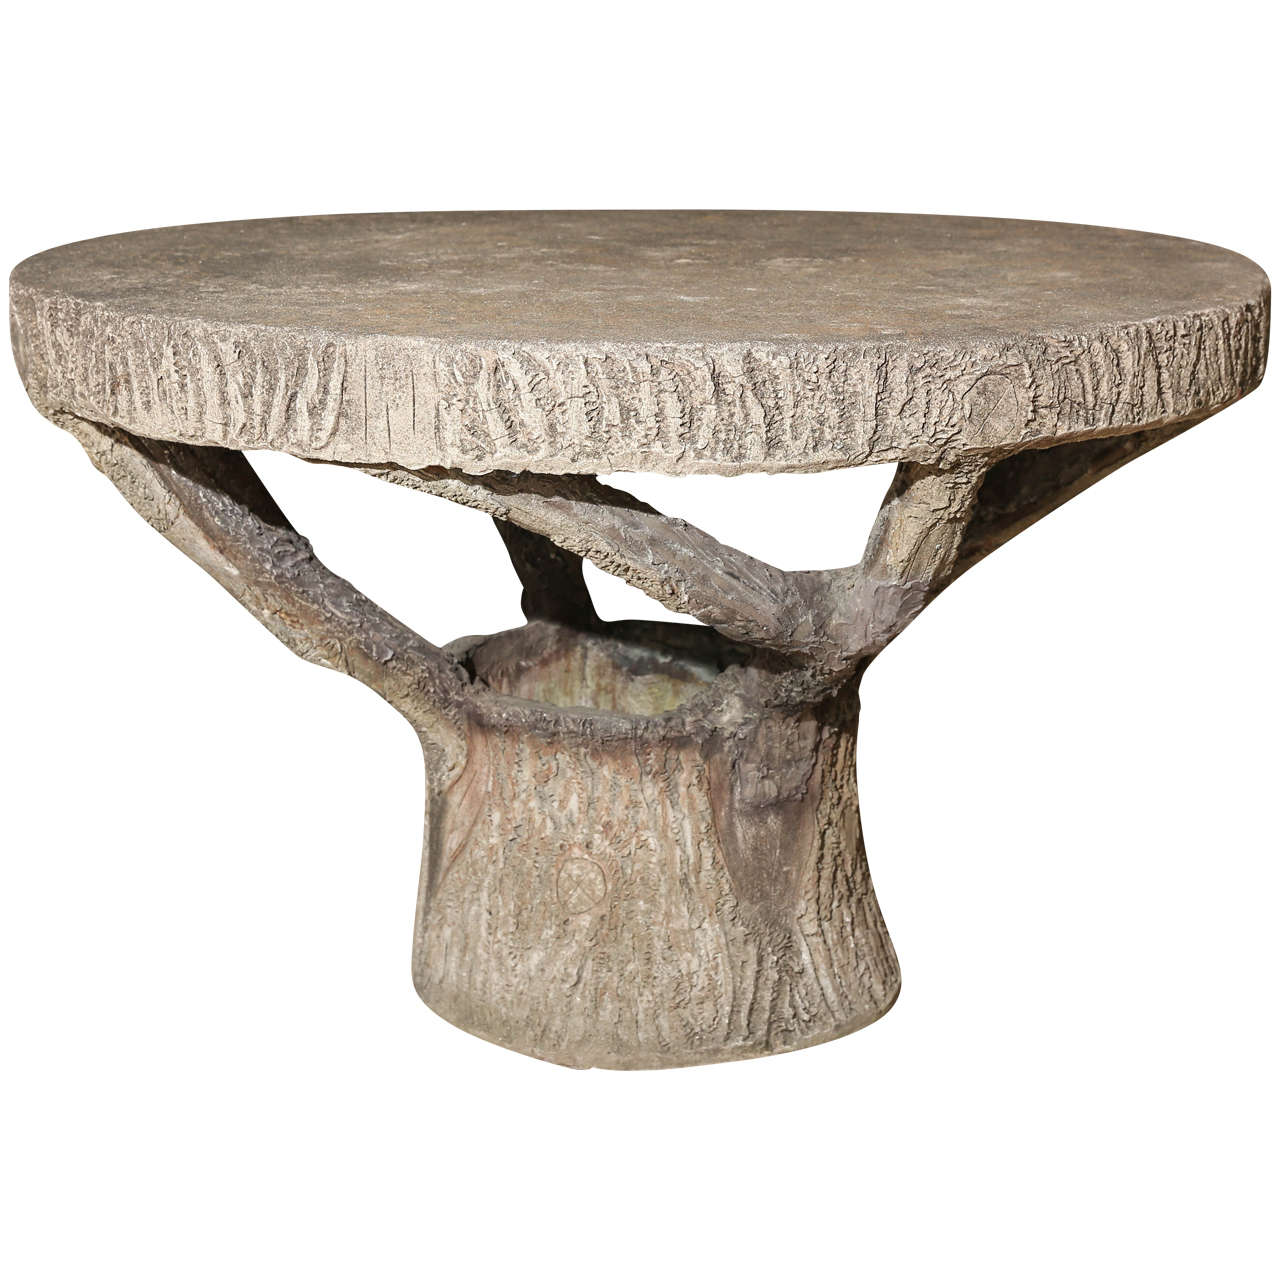 Vintage round faux bois table at 1stdibs Table jardin imitation bois